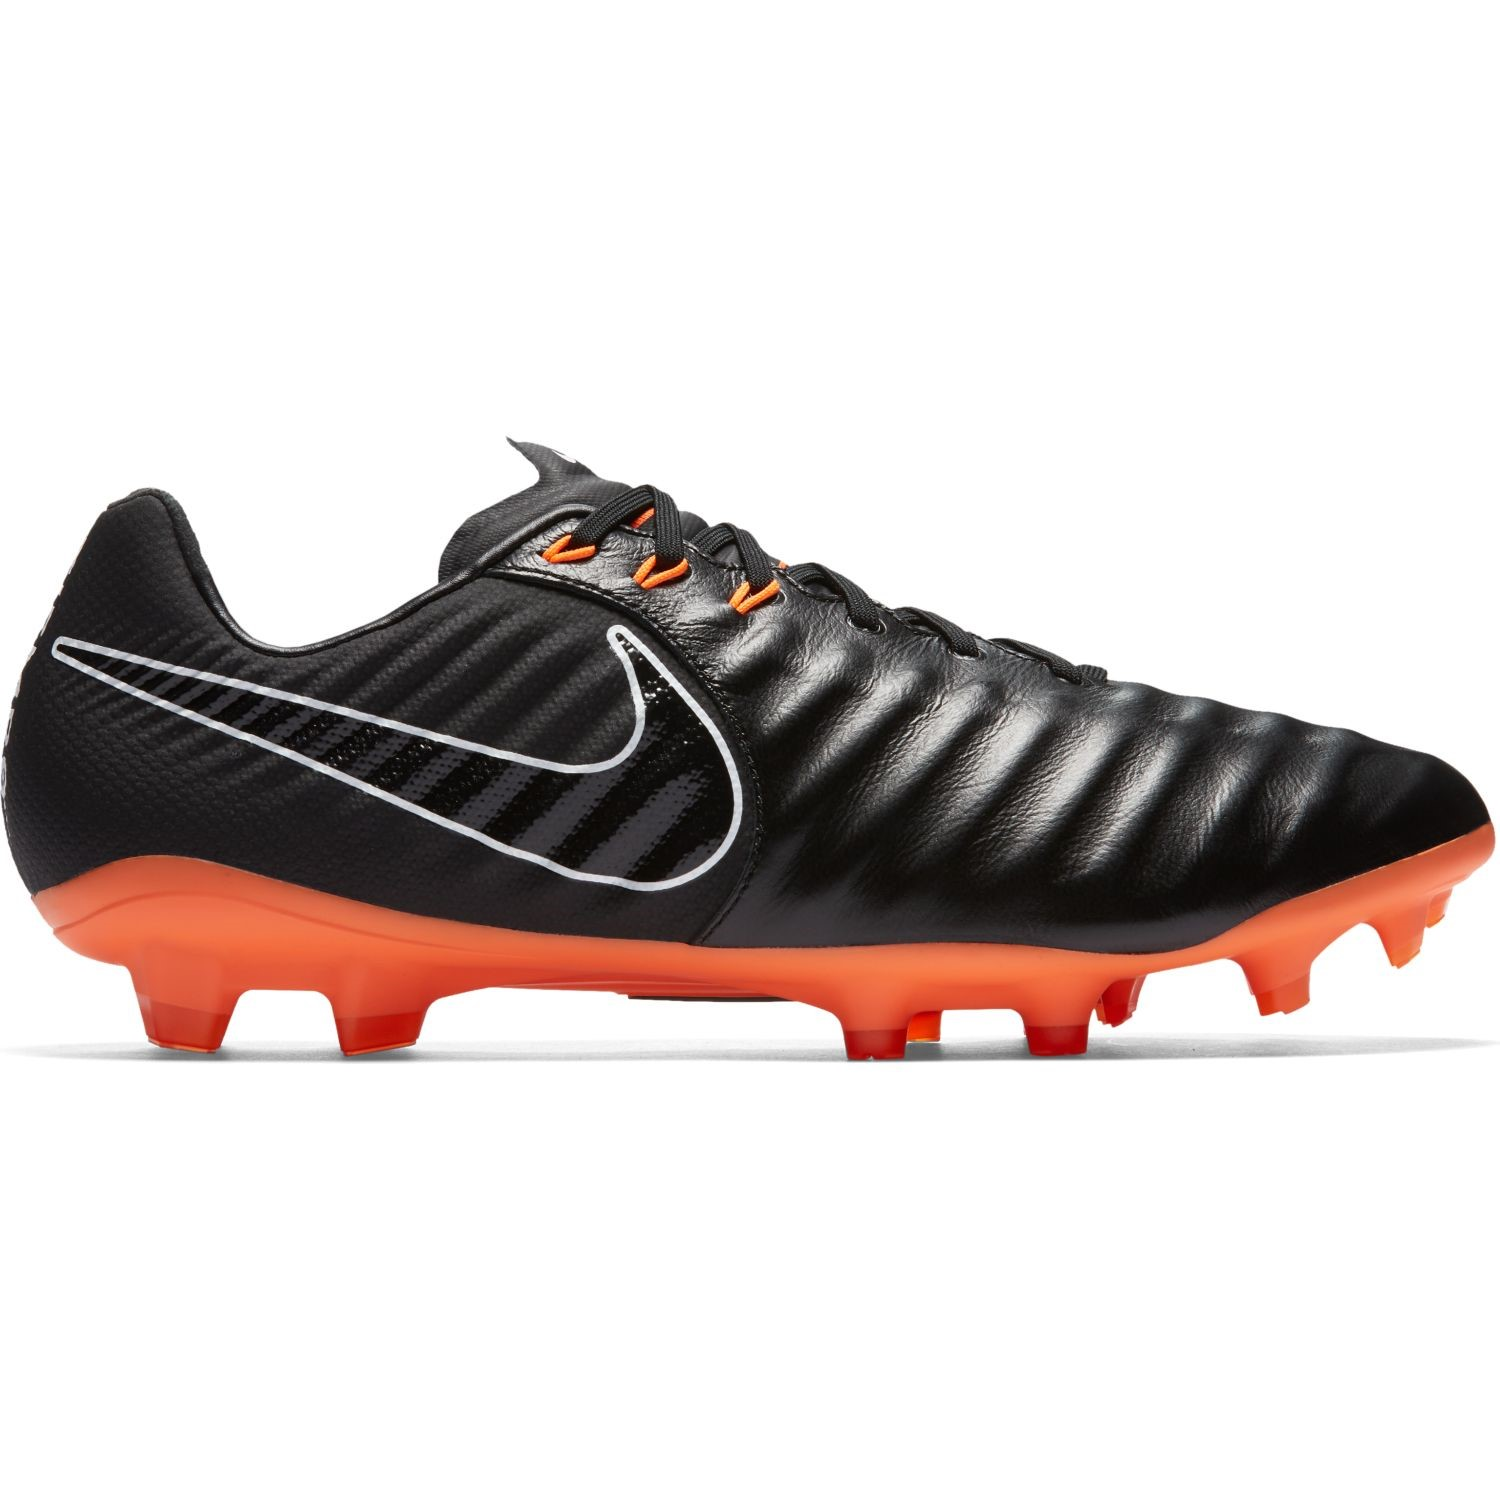 low priced ea038 559fe Nike Tiempo Legend VII Pro FG - Mens Football Boots - Black/Total Orange/